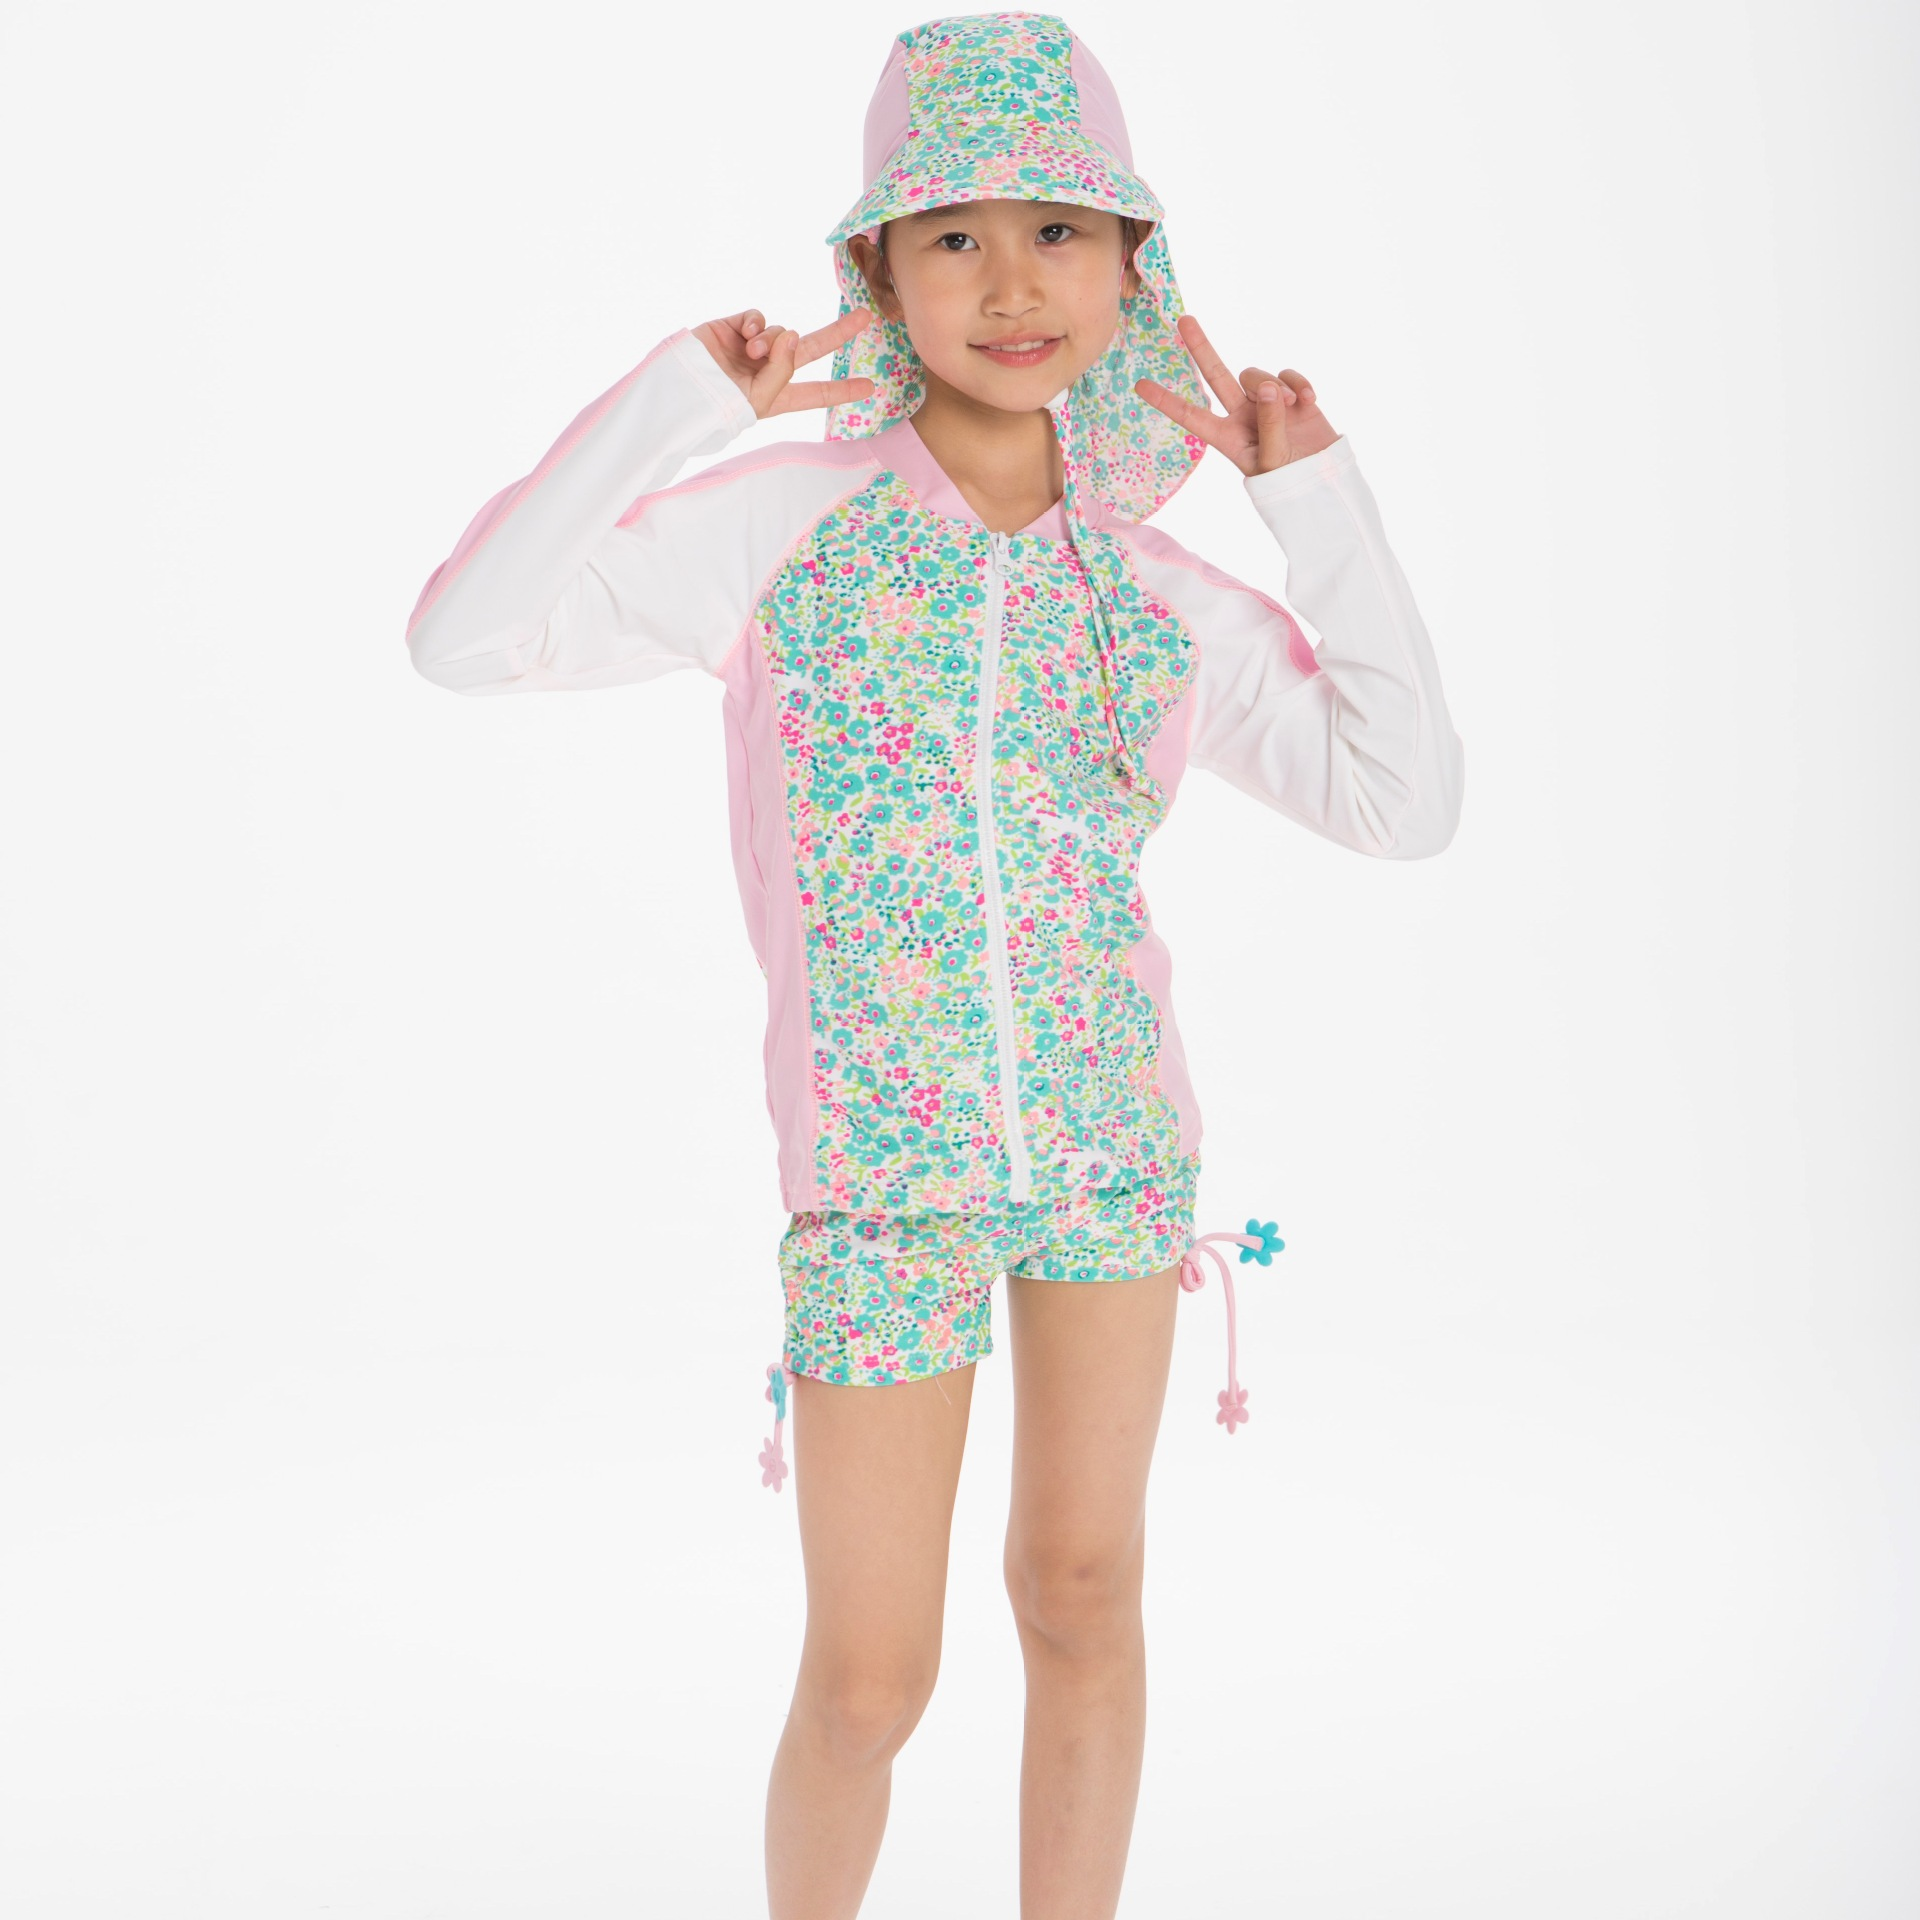 CHILDREN'S Surf Clothes Beach Set 4-12-Year-Old Girls Long Sleeve Shorts Two-piece Swimsuits Swimming Trunks Sun Protection Hat